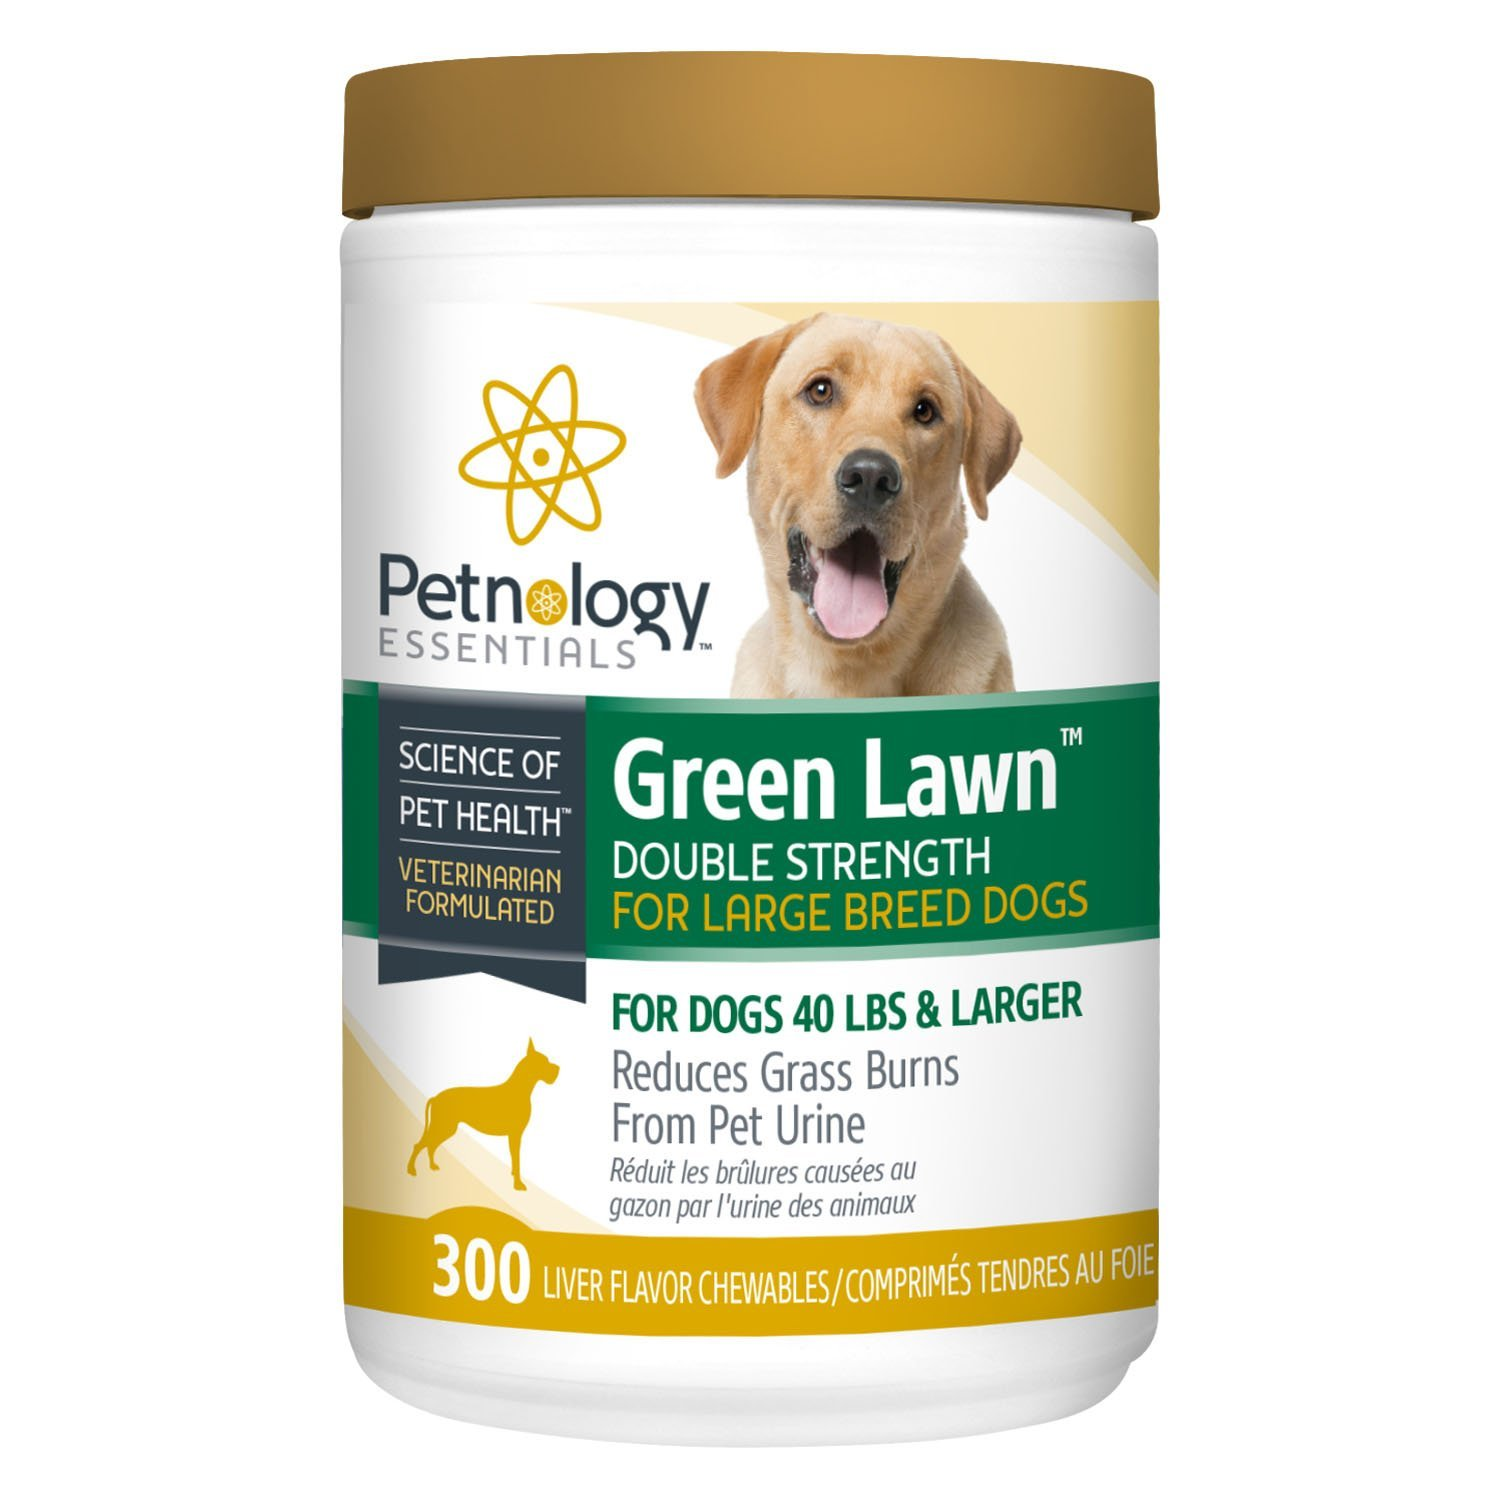 Petnology Green Lawn Double Strength Chewable, 300 Count